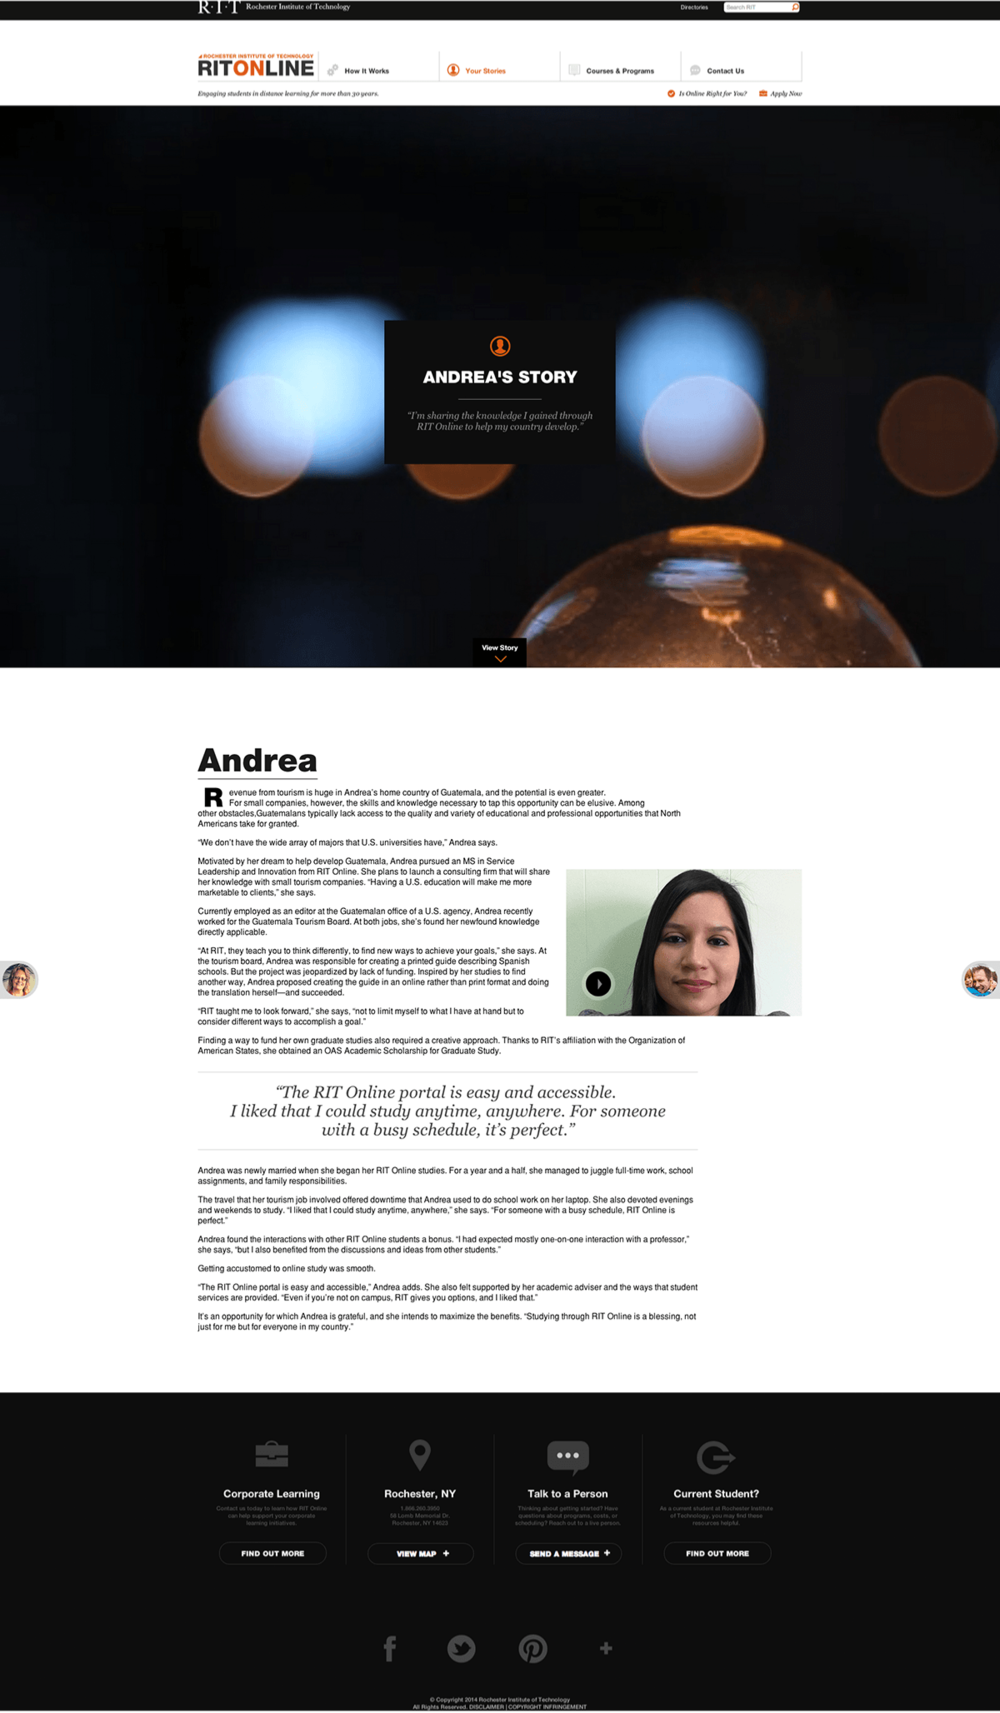 andreas-story-ritonline@2x.png